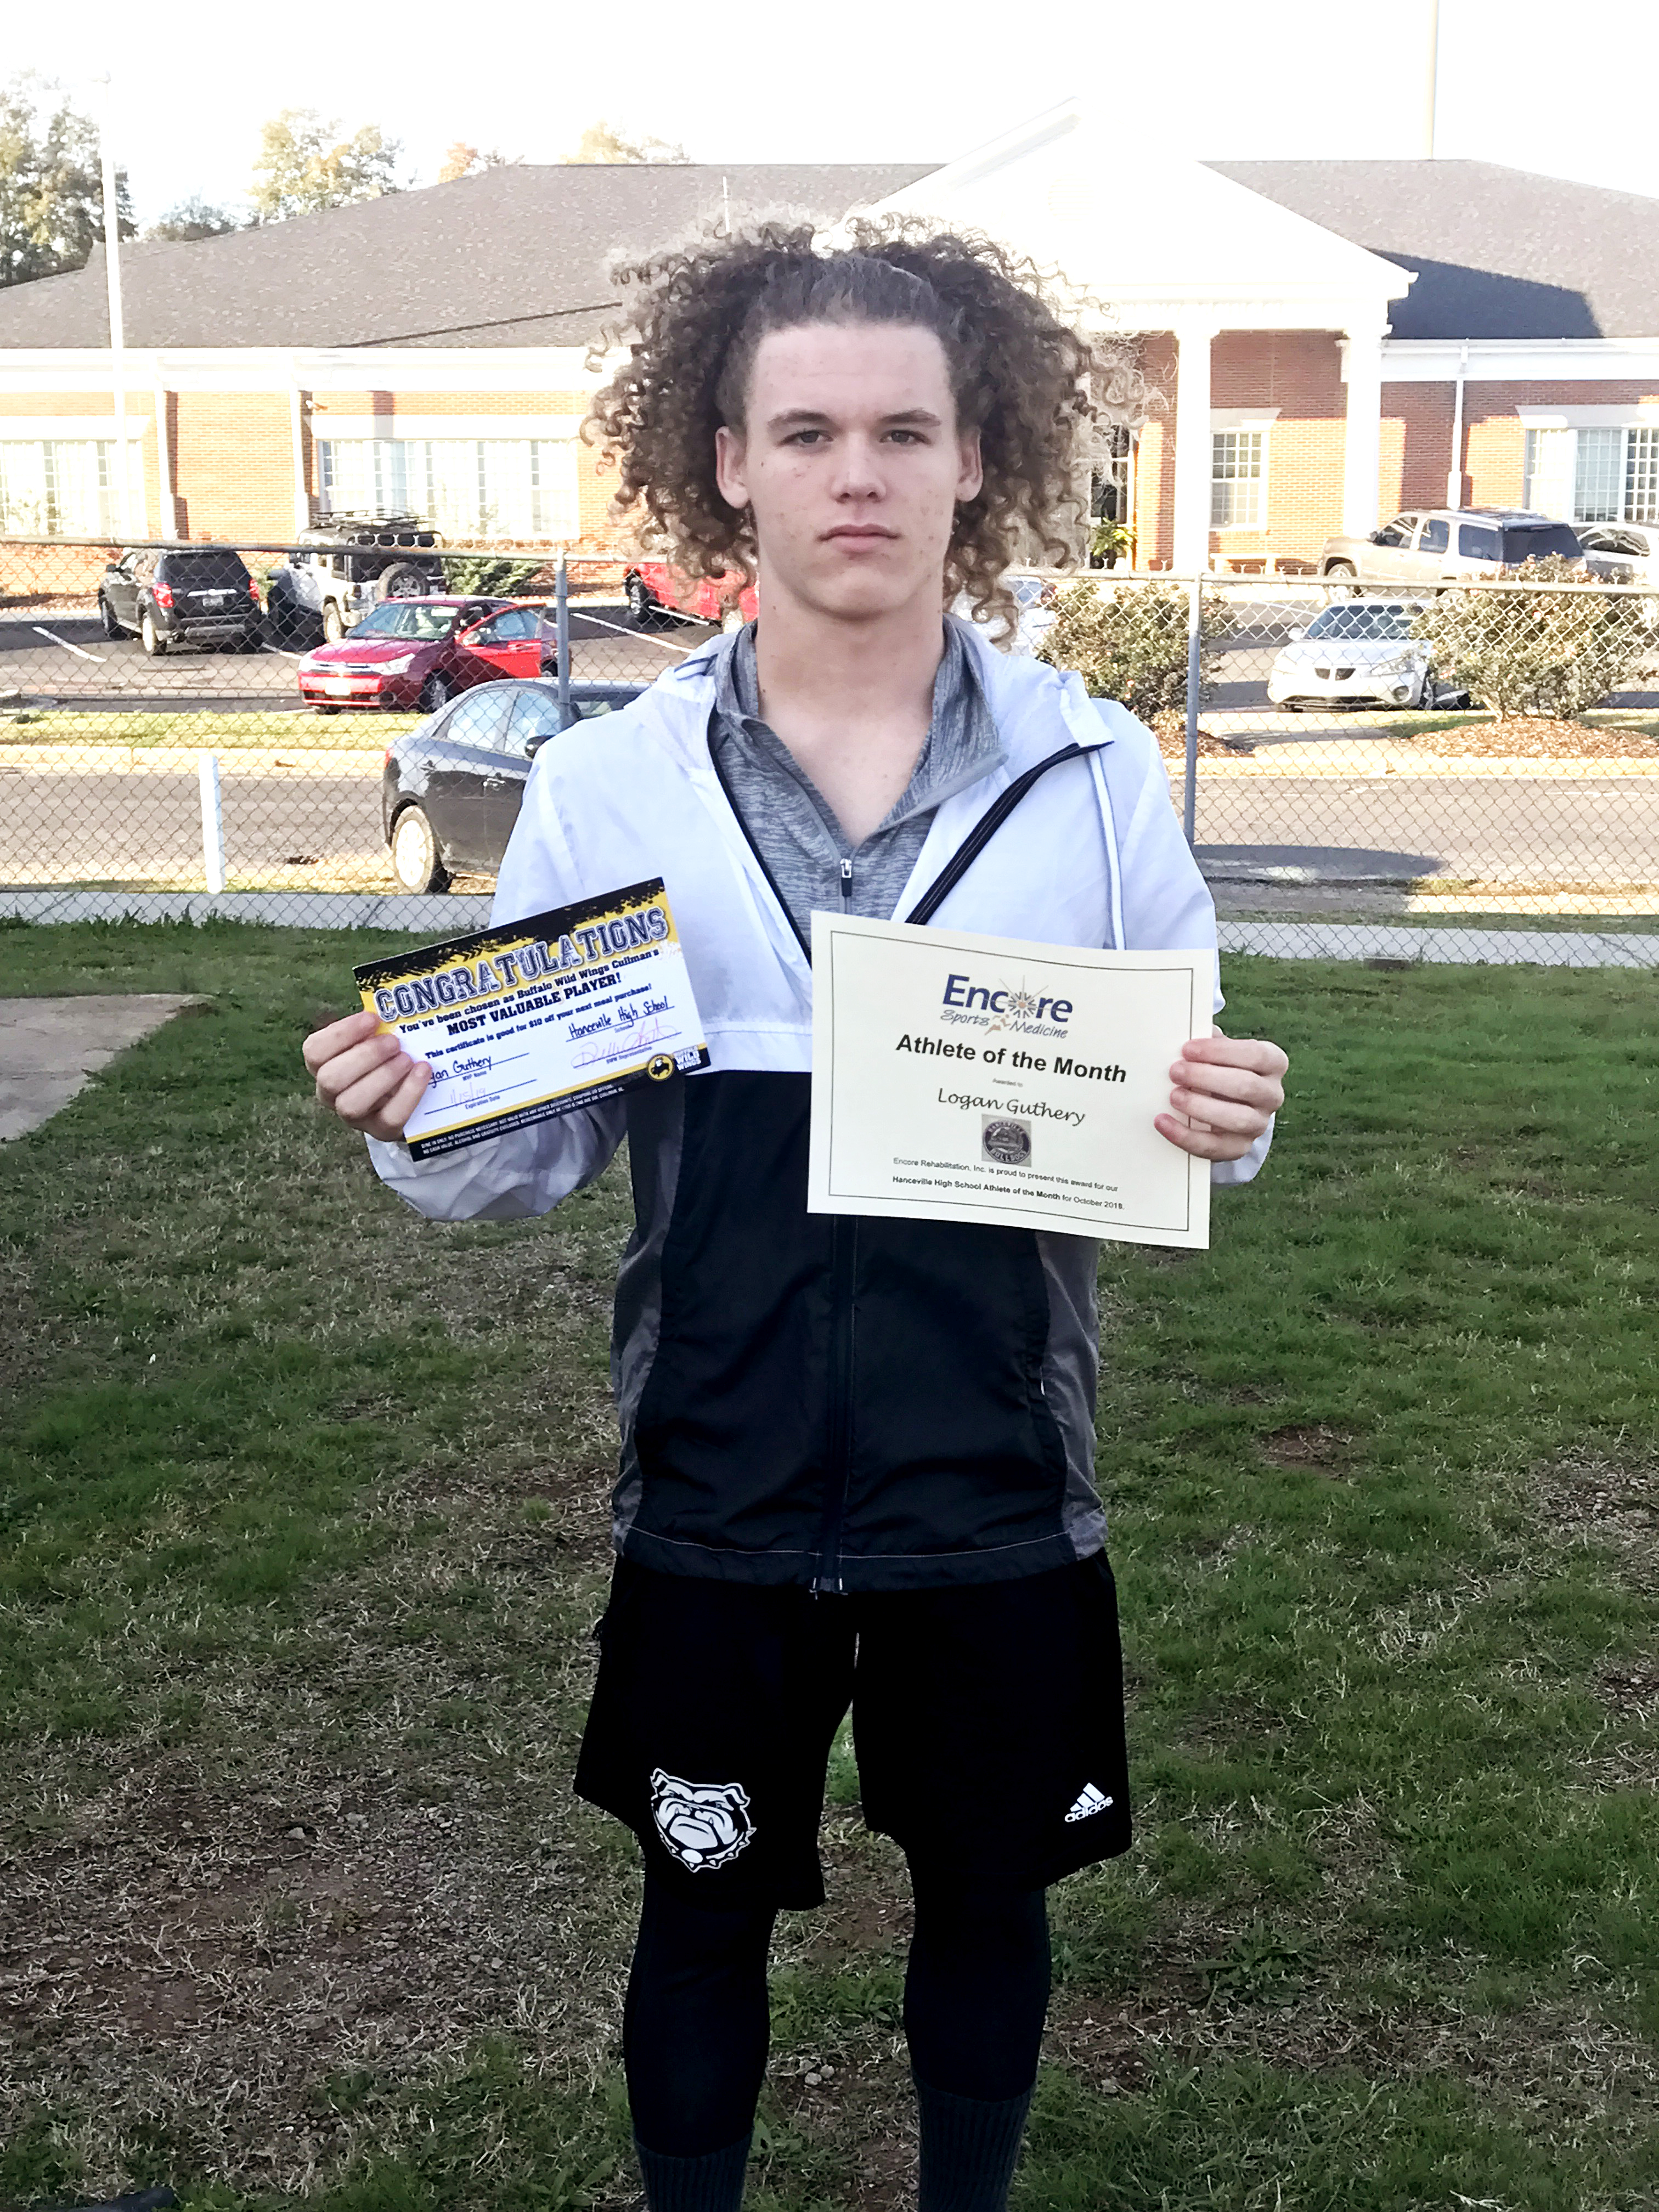 Logan Guthery is Athlete of the Month for Hanceville High School and Encore Rehabilitation-Cullman #EncoreRehab